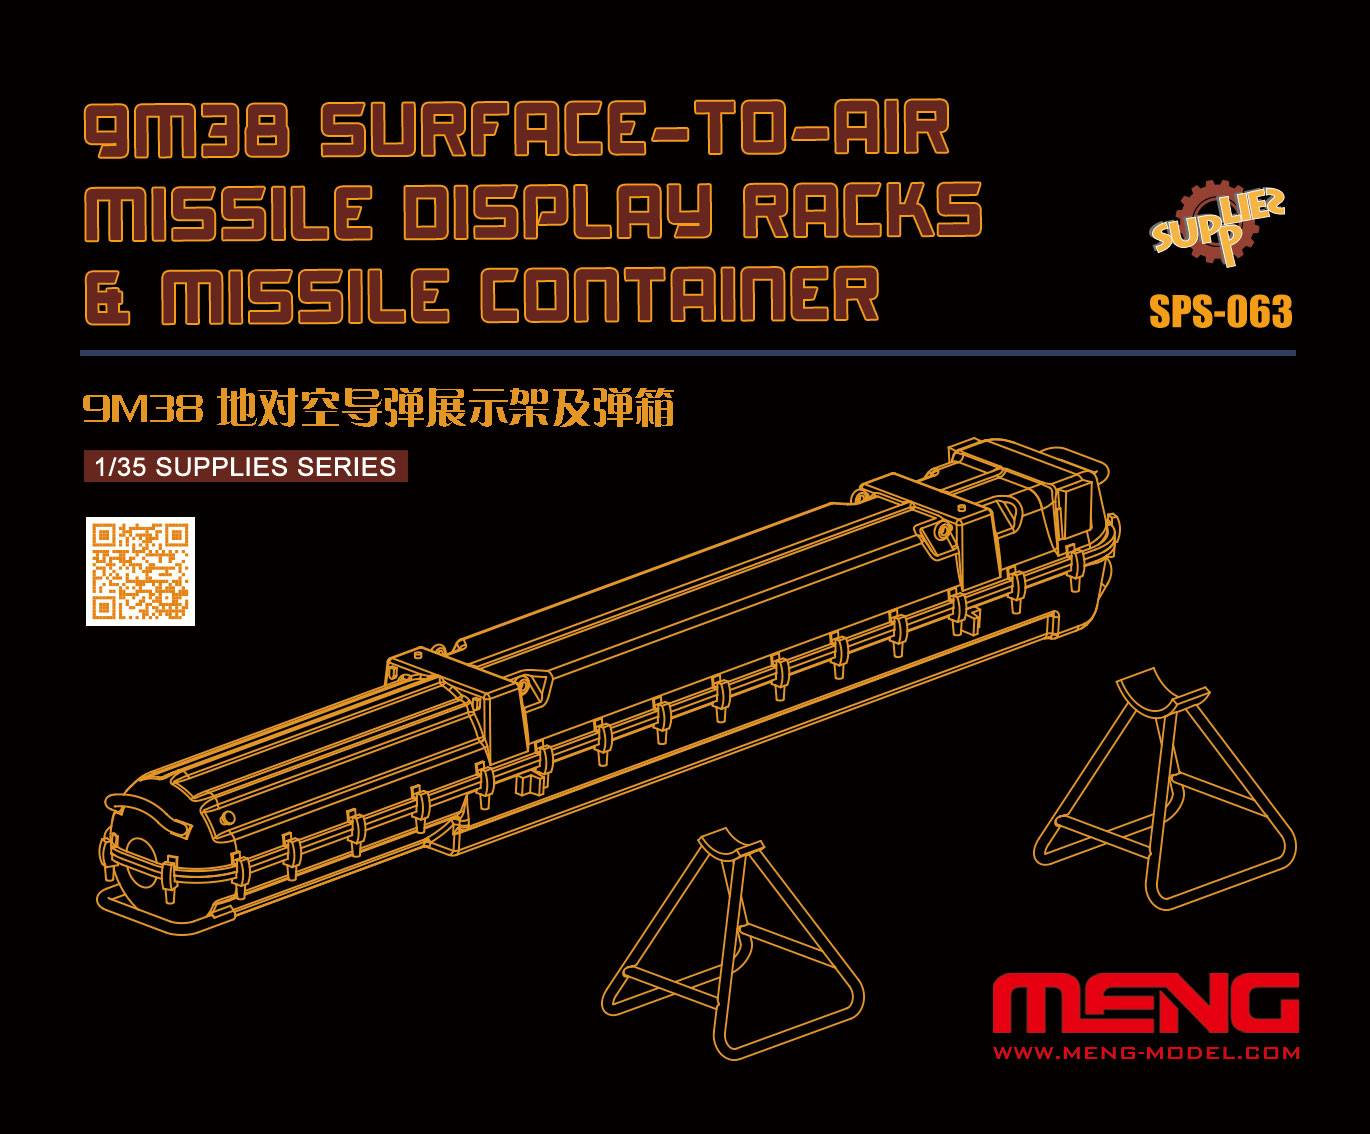 9M38 Surface-to-air Missile Display Racks & Missile Container (Resin)